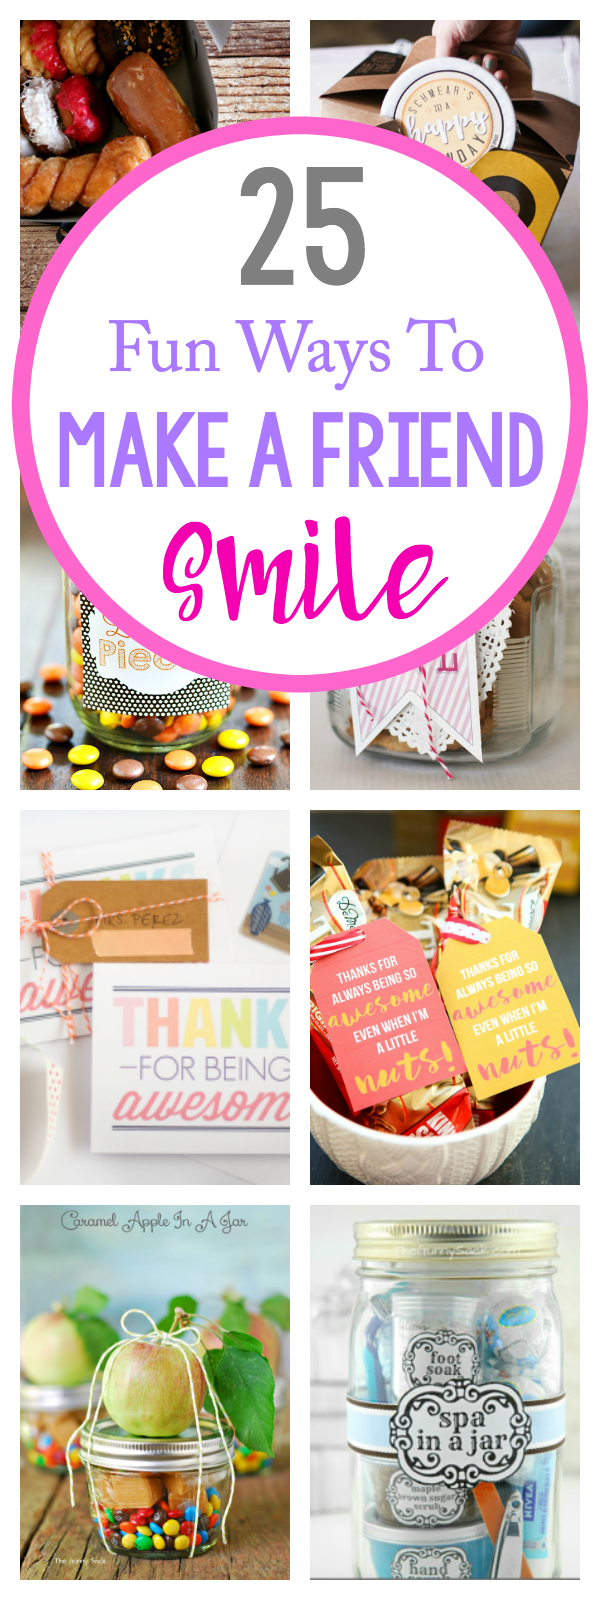 Cute Gifts for Friends for Any Occasion Cute gifts for